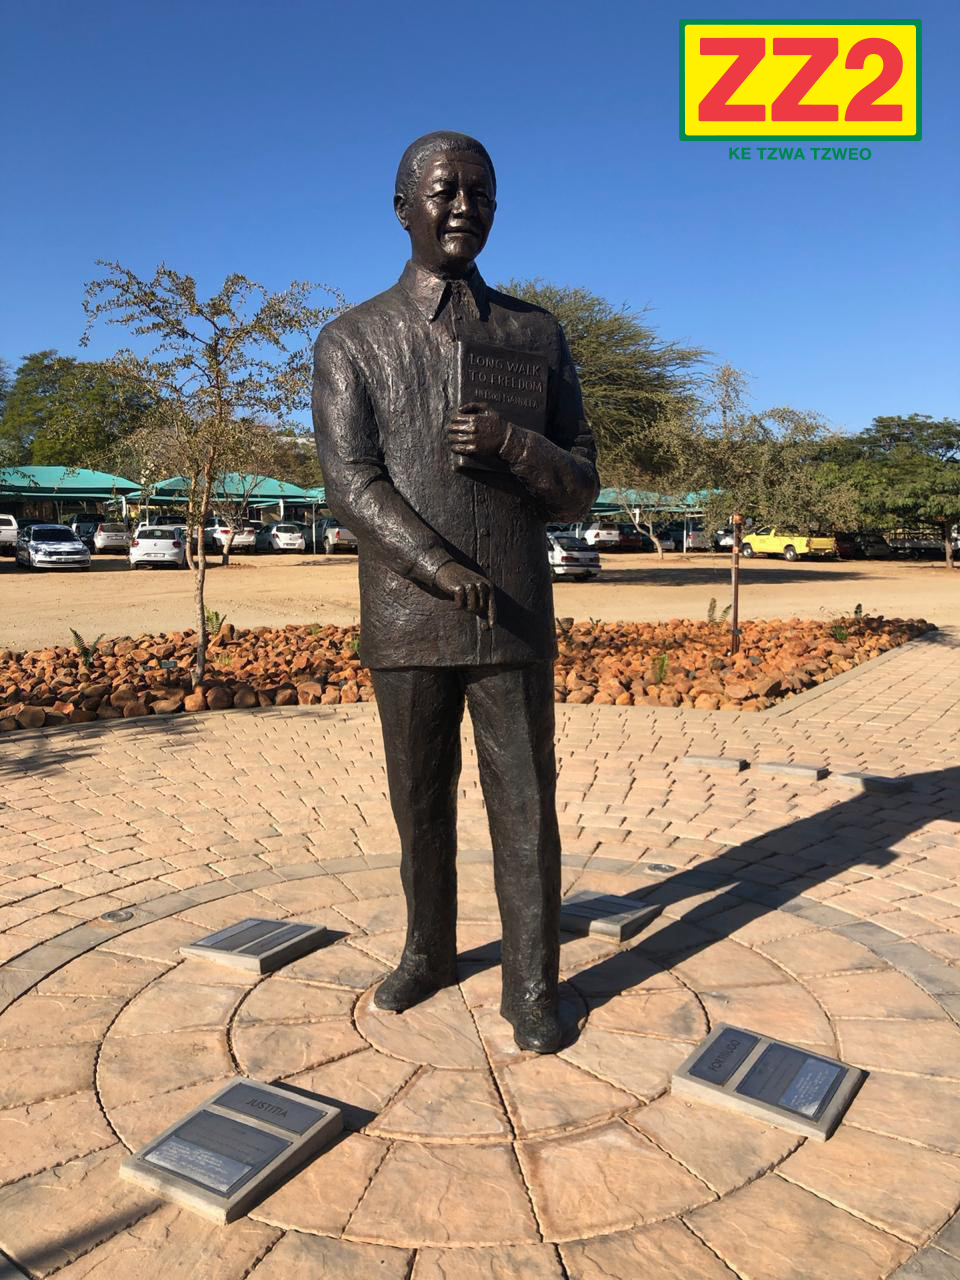 Madiba and ZZ2 share values